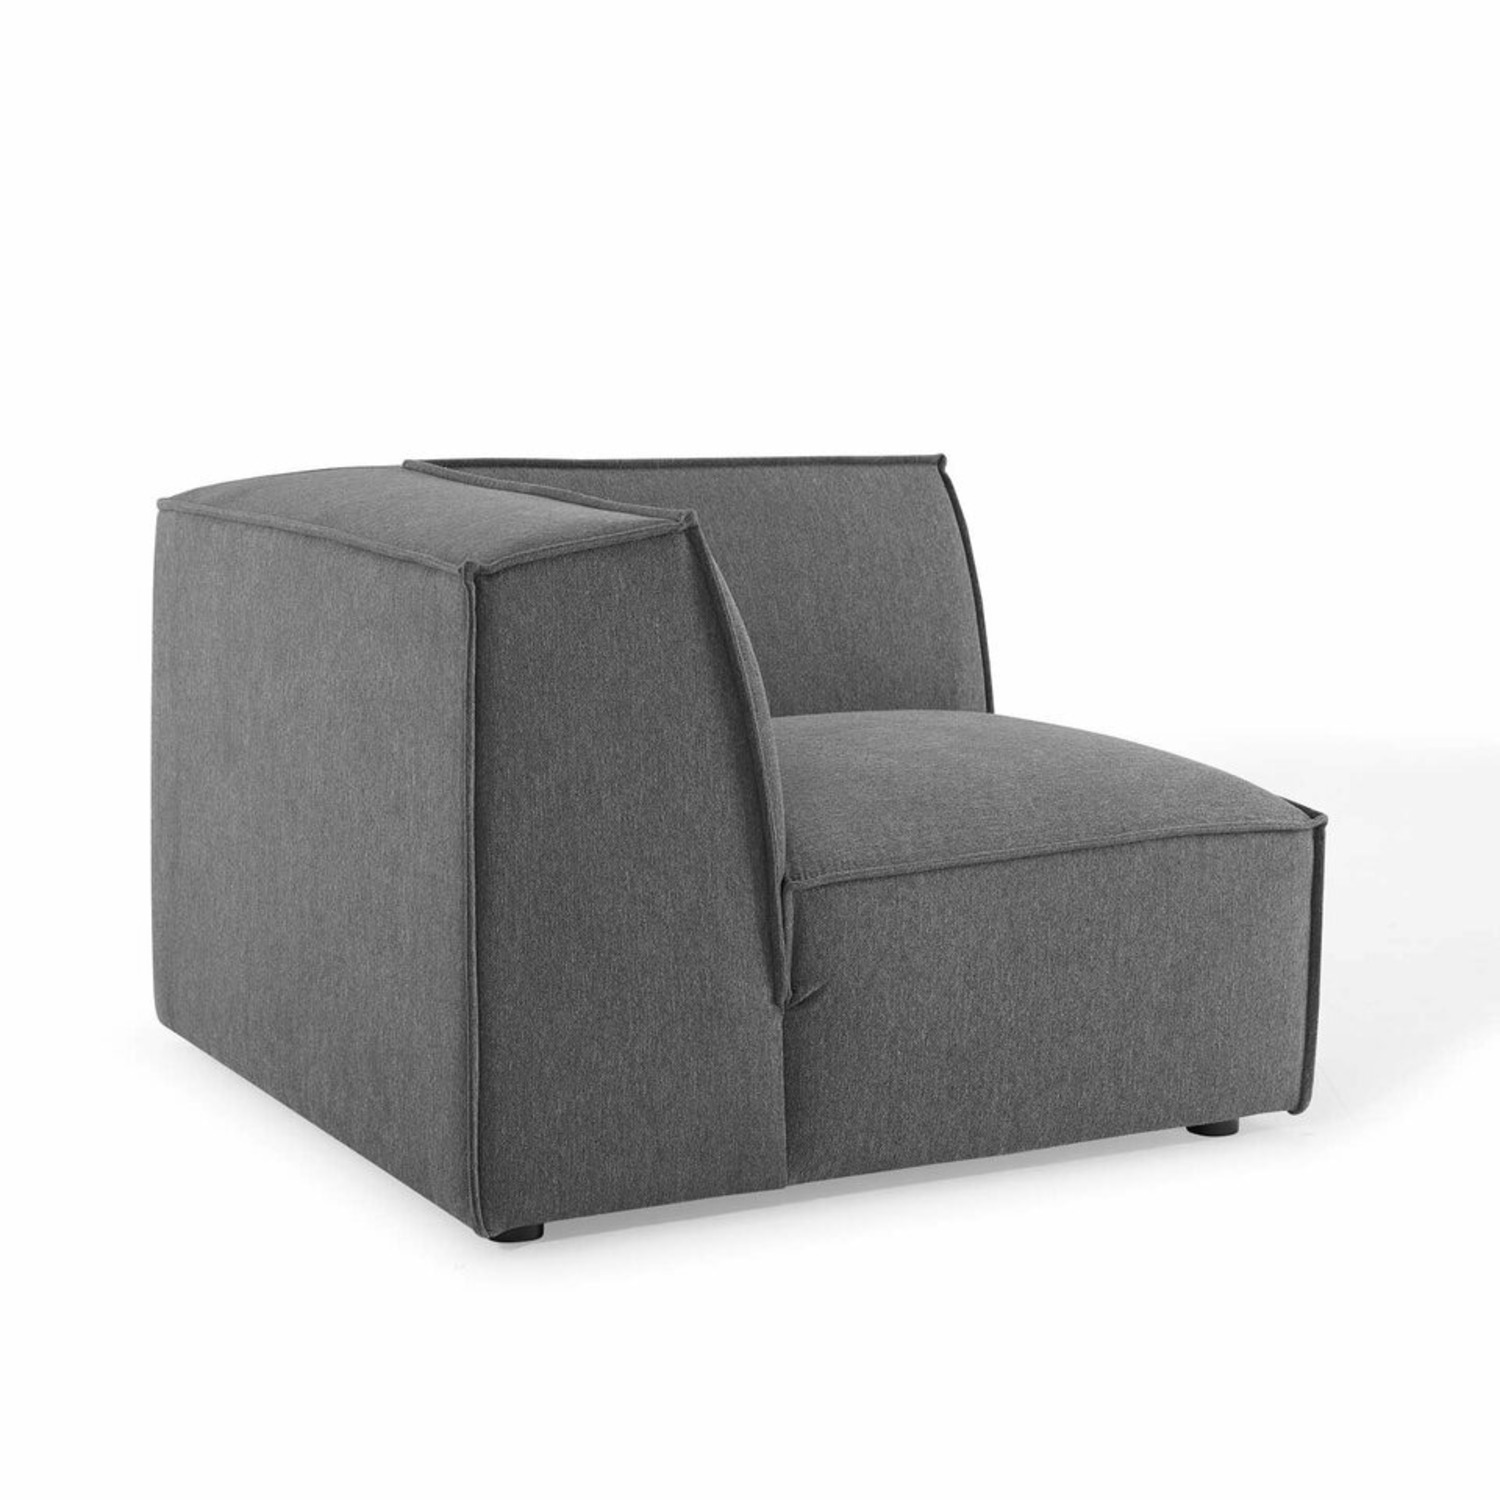 5-Piece Sectional Sofa In CharcoalW/ Piping Detail - image-6